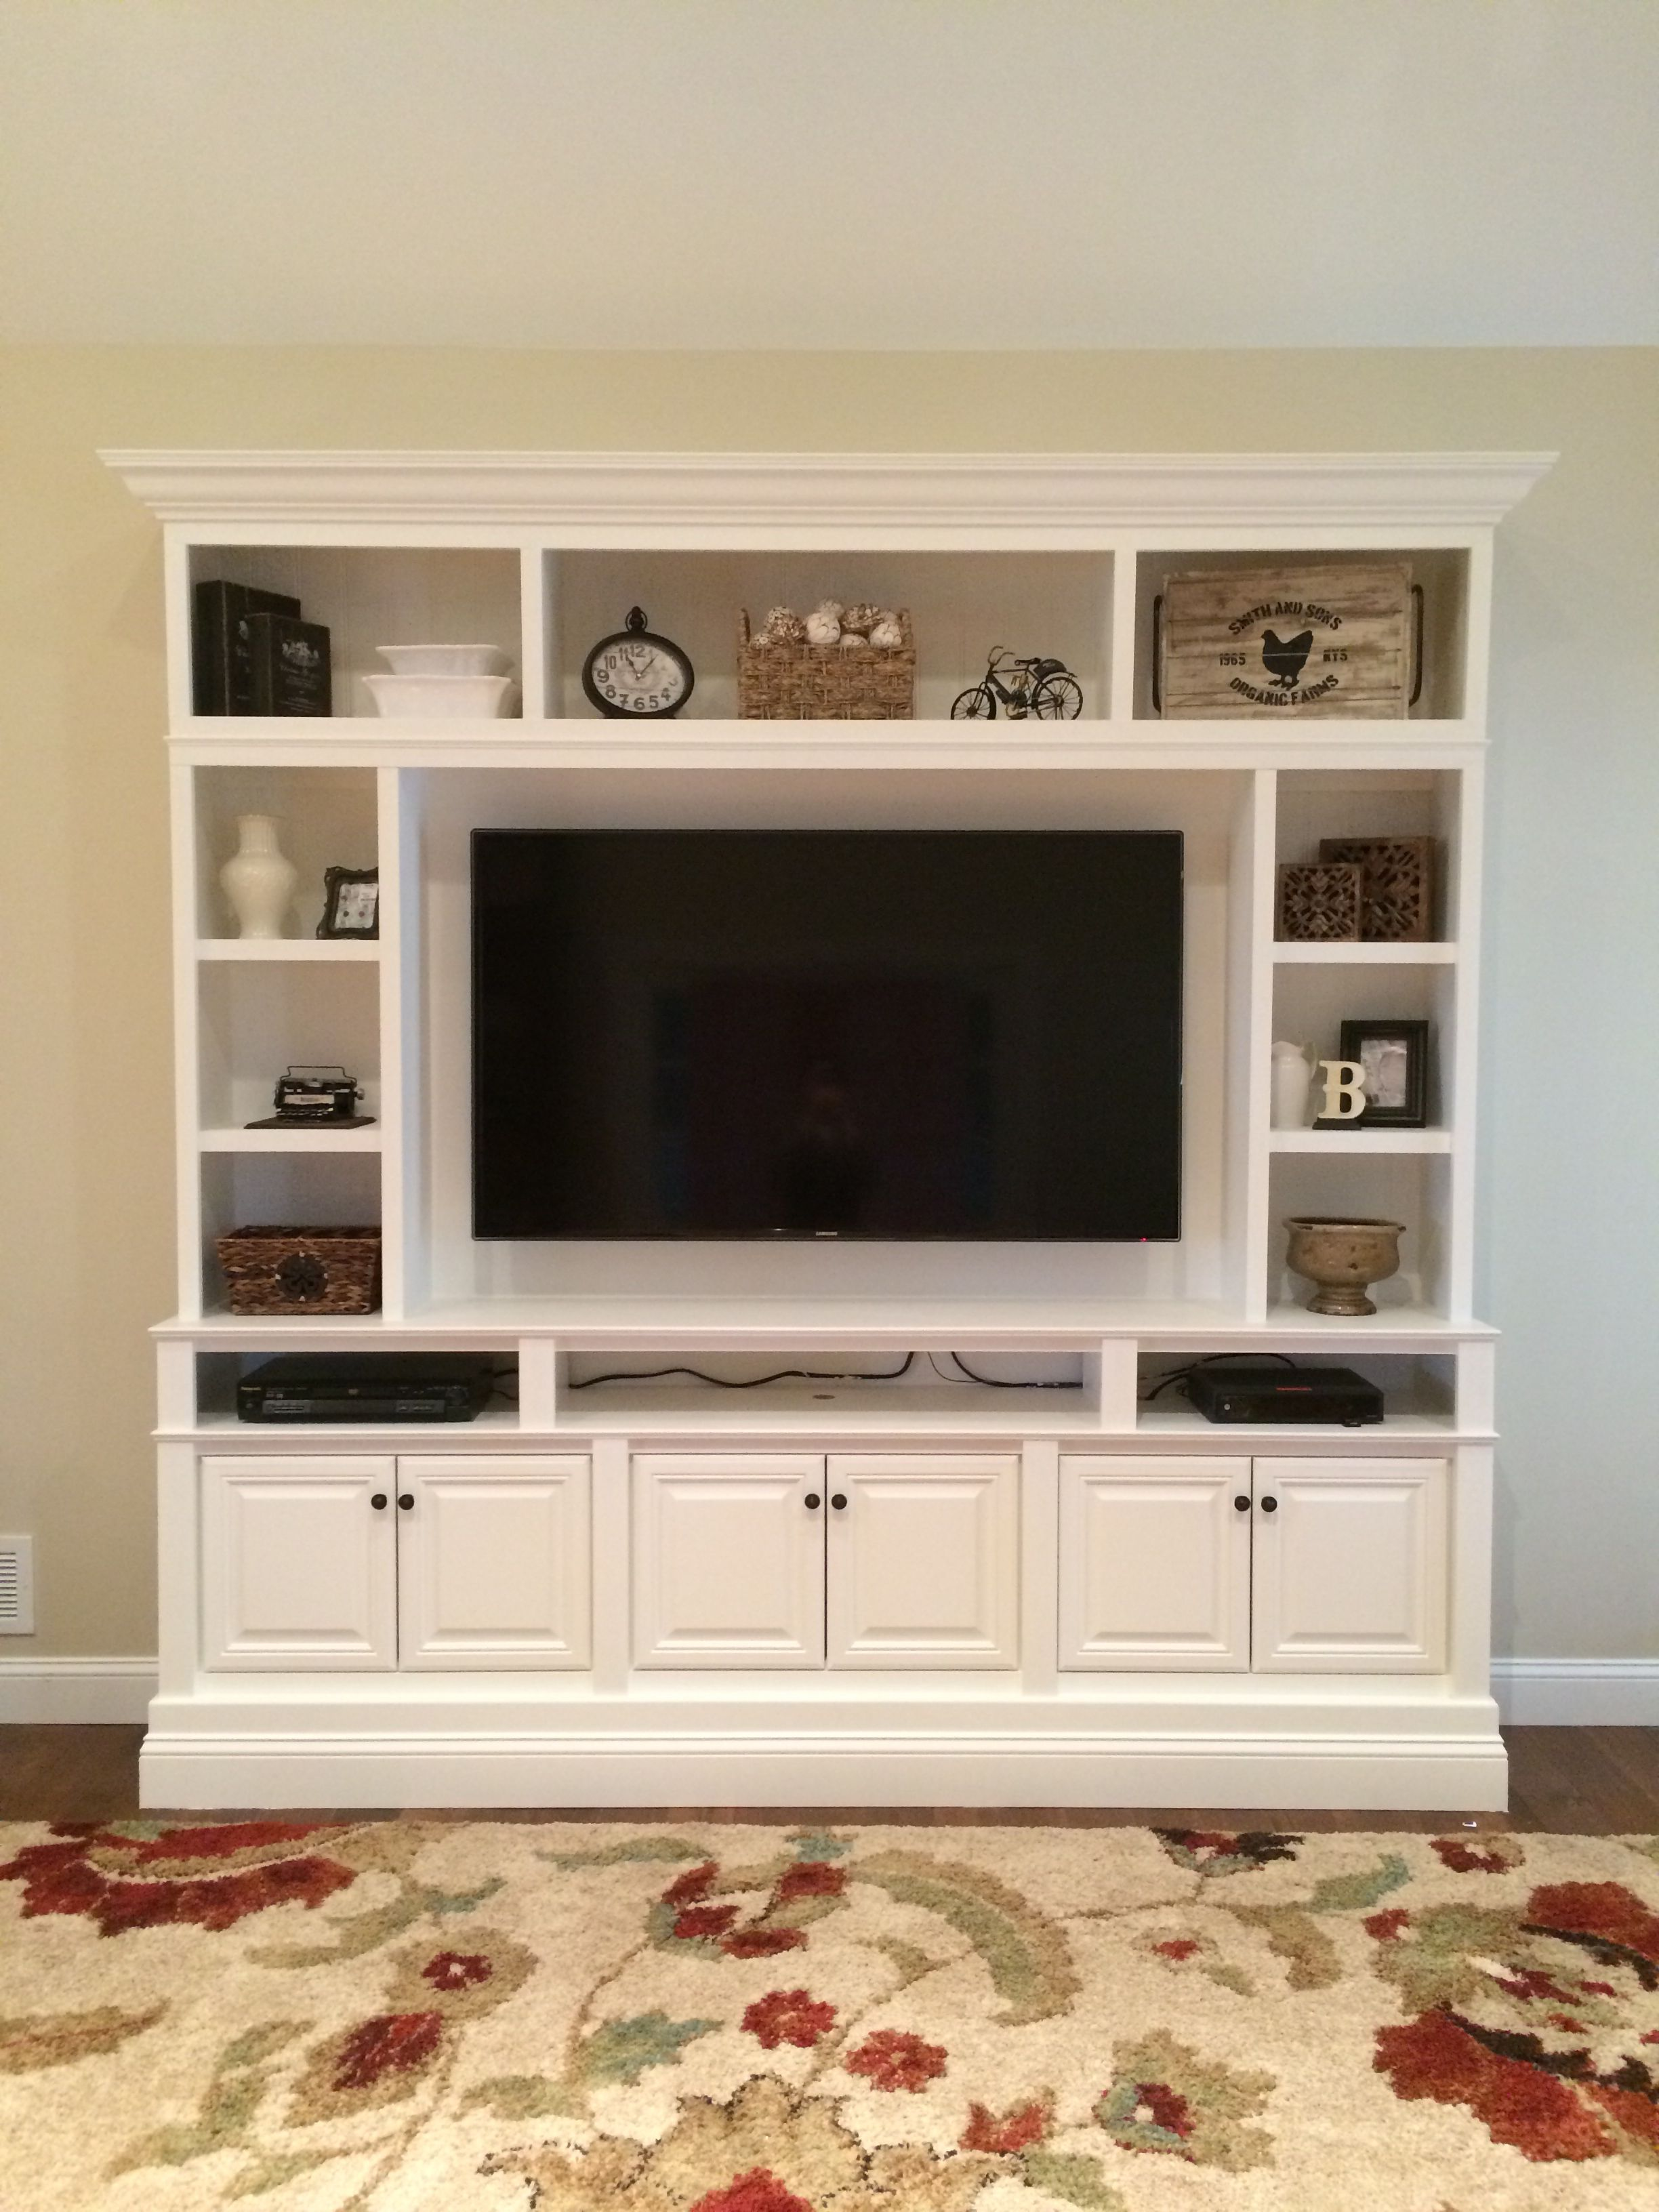 Simple Tv Wall Unit Designs For Living Room Pictures Of Apartments 17 Diy Entertainment Center Ideas And Your New Home Downright This Is My Built In Made 60 I Used Three Stock Brown Maple Depot Upper Kitchen Cabinets 30 Wide X 18